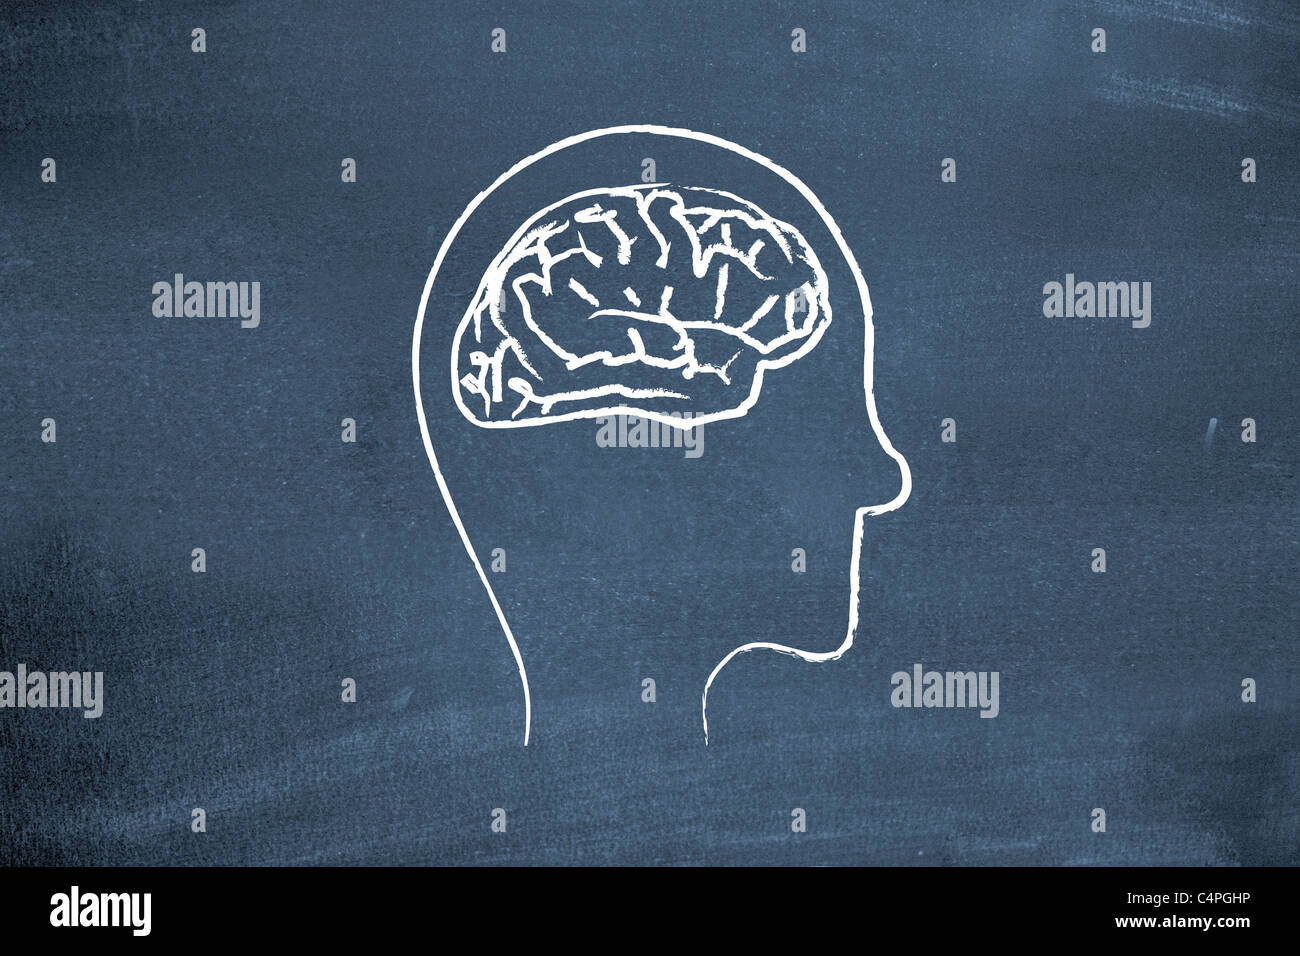 Thinking - Stock Image